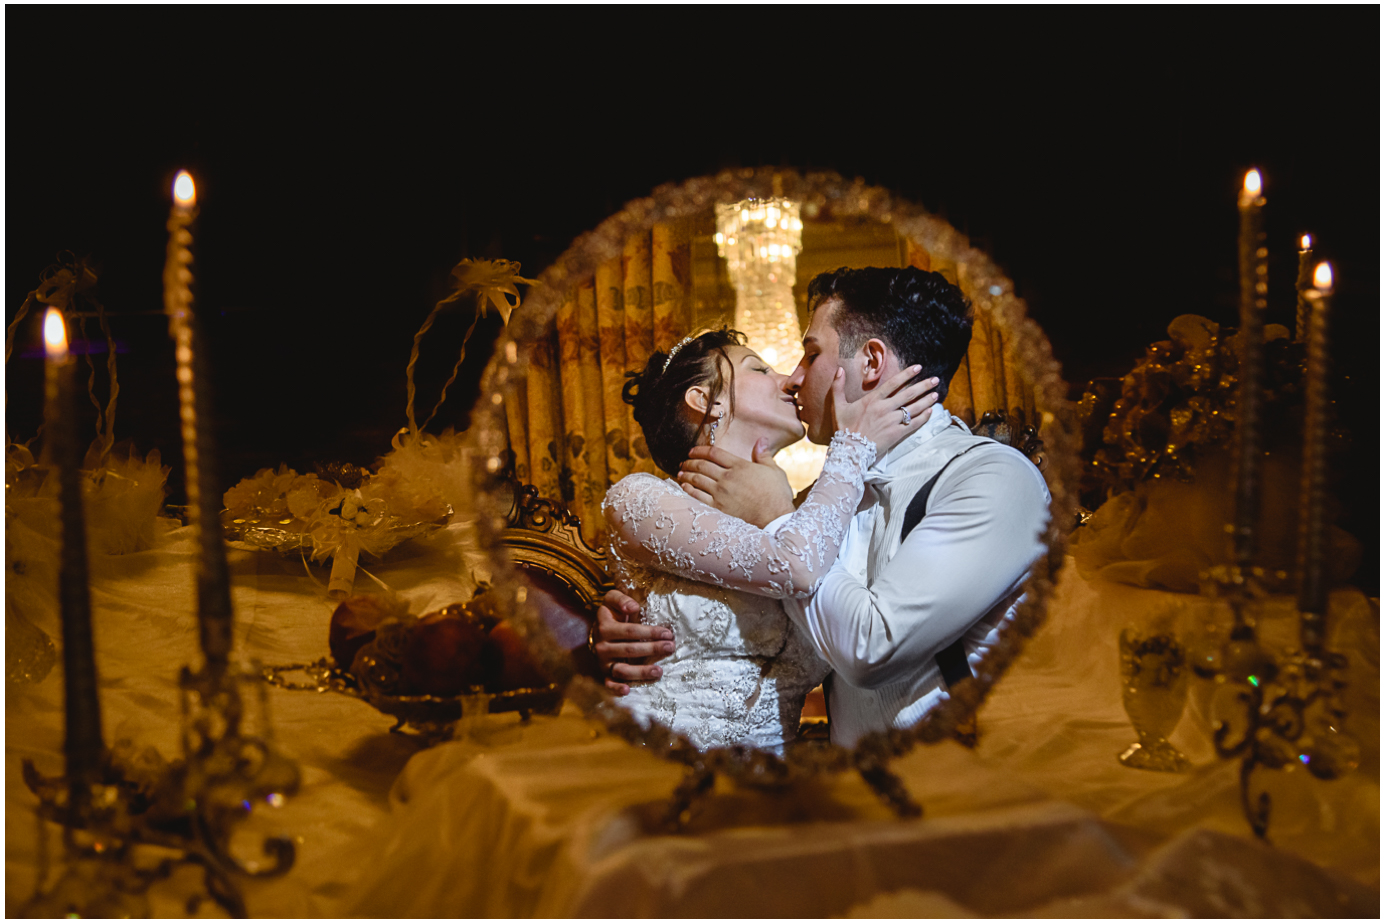 iranian wedding photographer 247 - Drapers Hall London Wedding Photographer